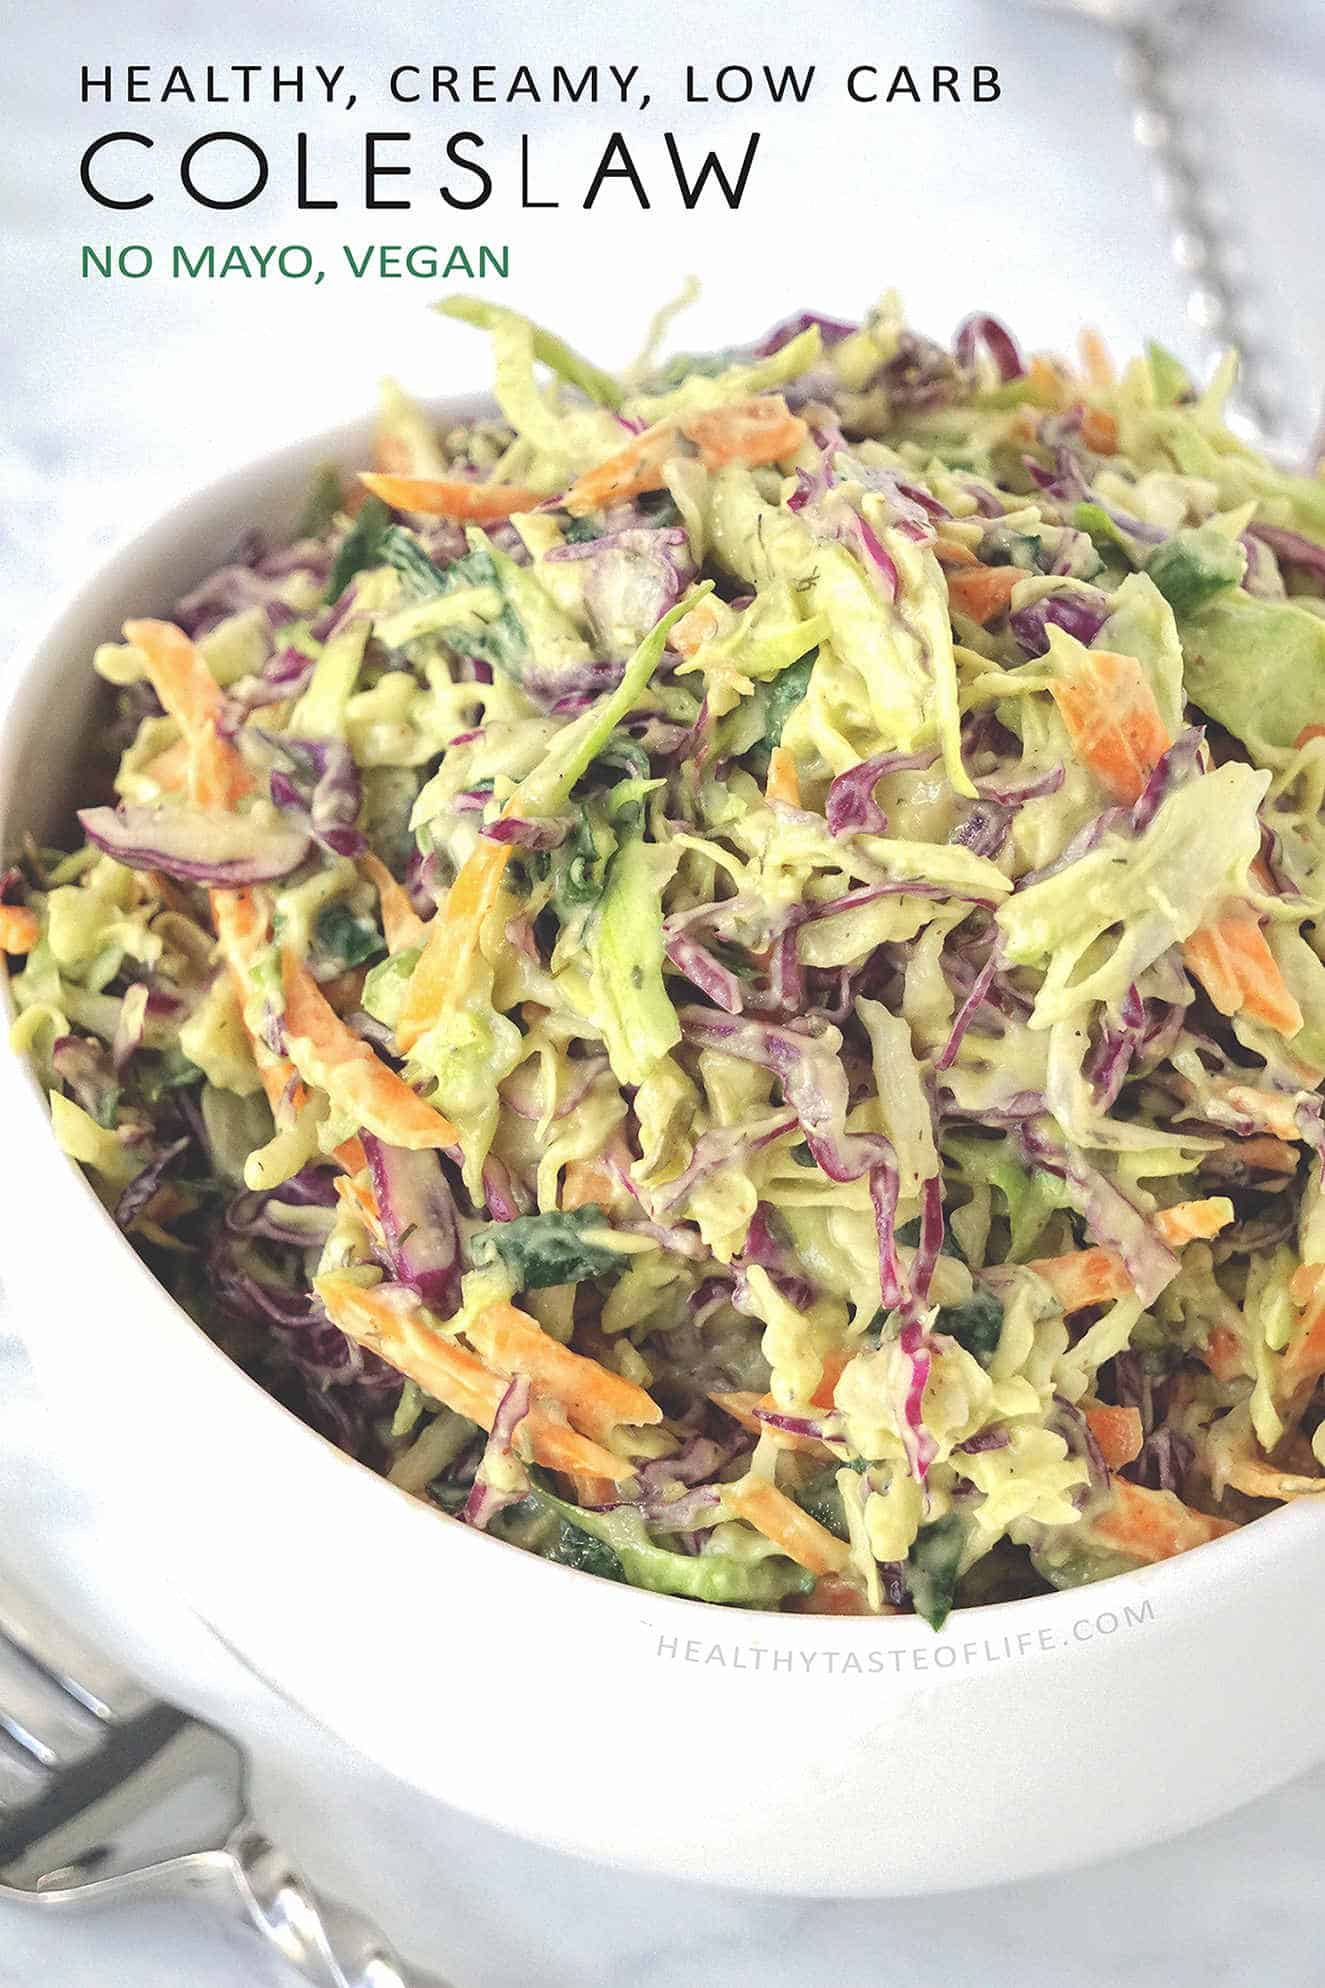 A creamy dairy free whole30 coleslaw without mayo which is low carb, low in calories, gluten free, sugar free, vegan, creamy in texture also paleo, keto and whole30 approved.